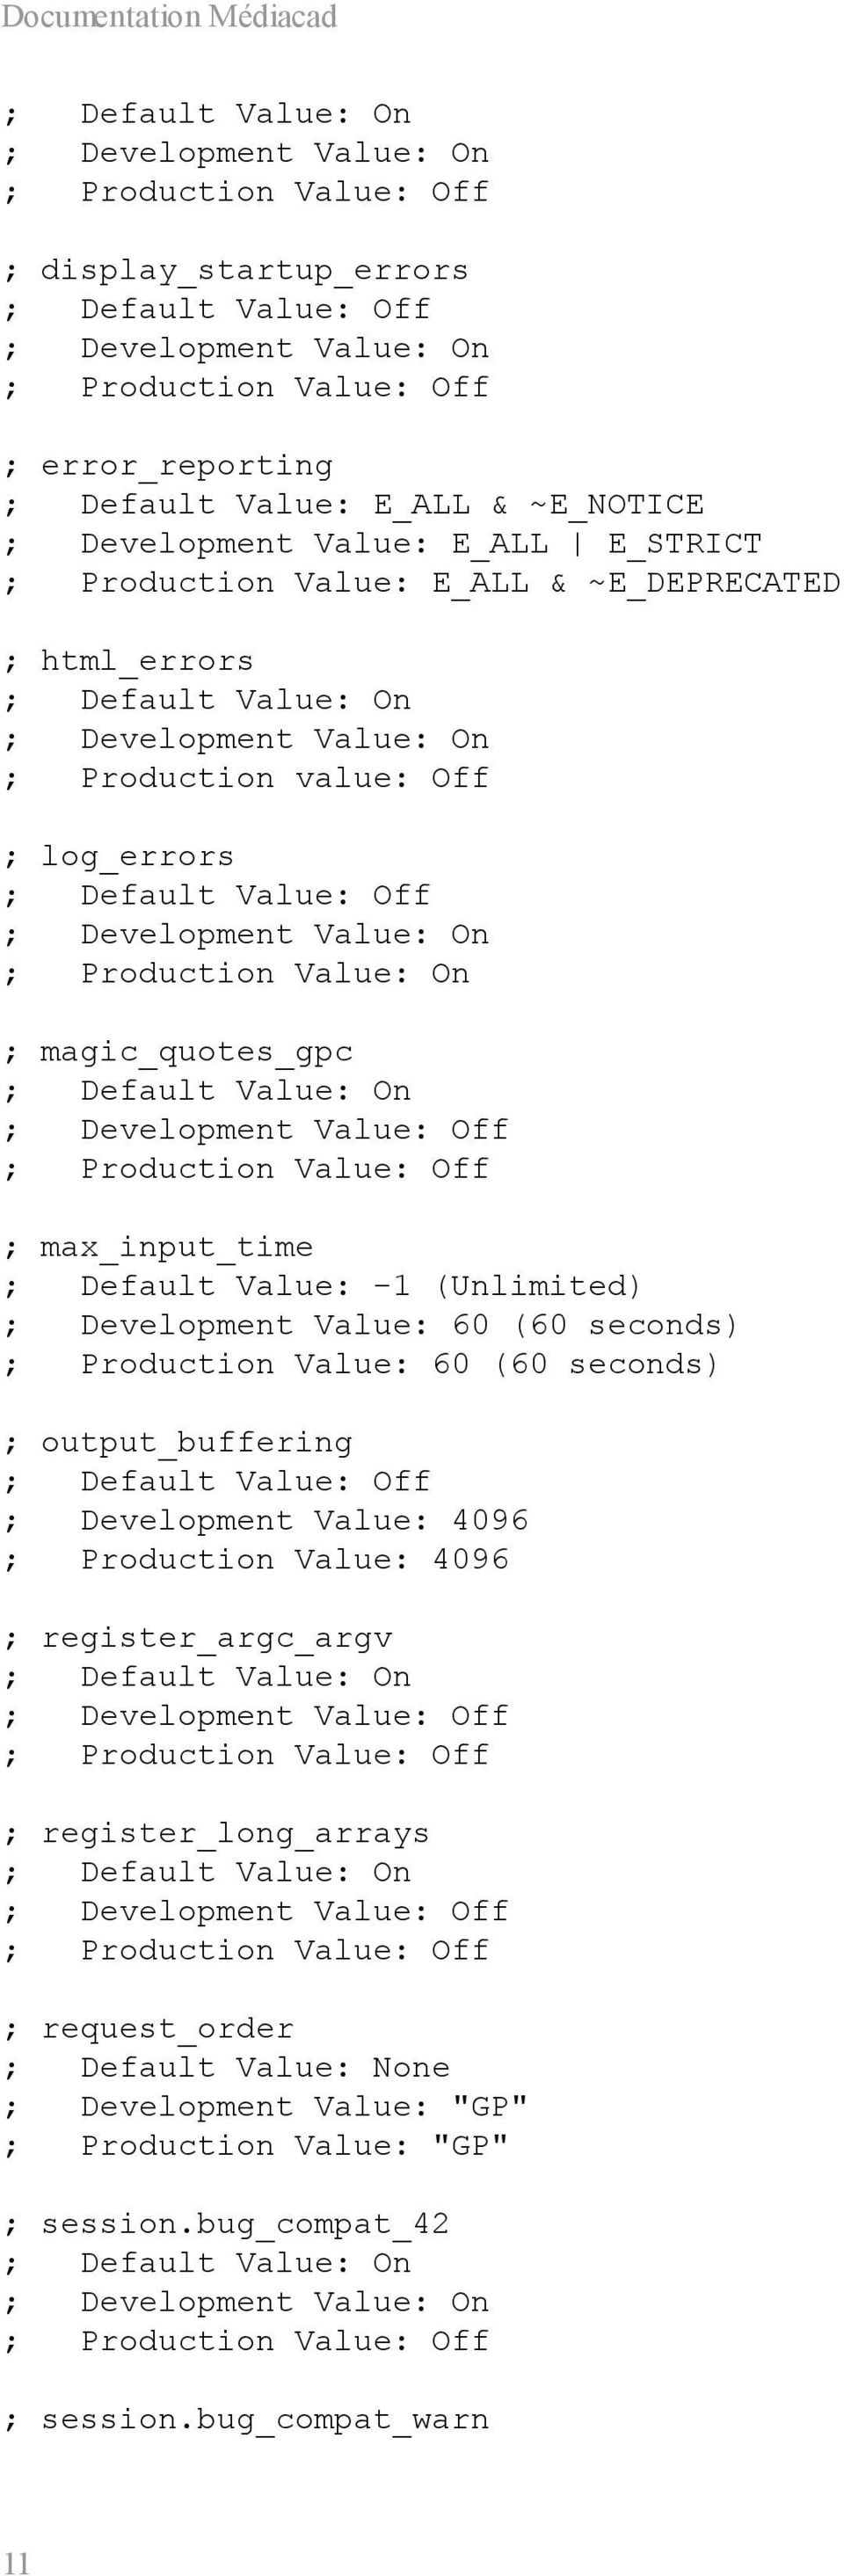 Default Value: Off ; Development Value: On ; Production Value: On ; magic_quotes_gpc ; Default Value: On ; Development Value: Off ; Production Value: Off ; max_input_time ; Default Value: -1